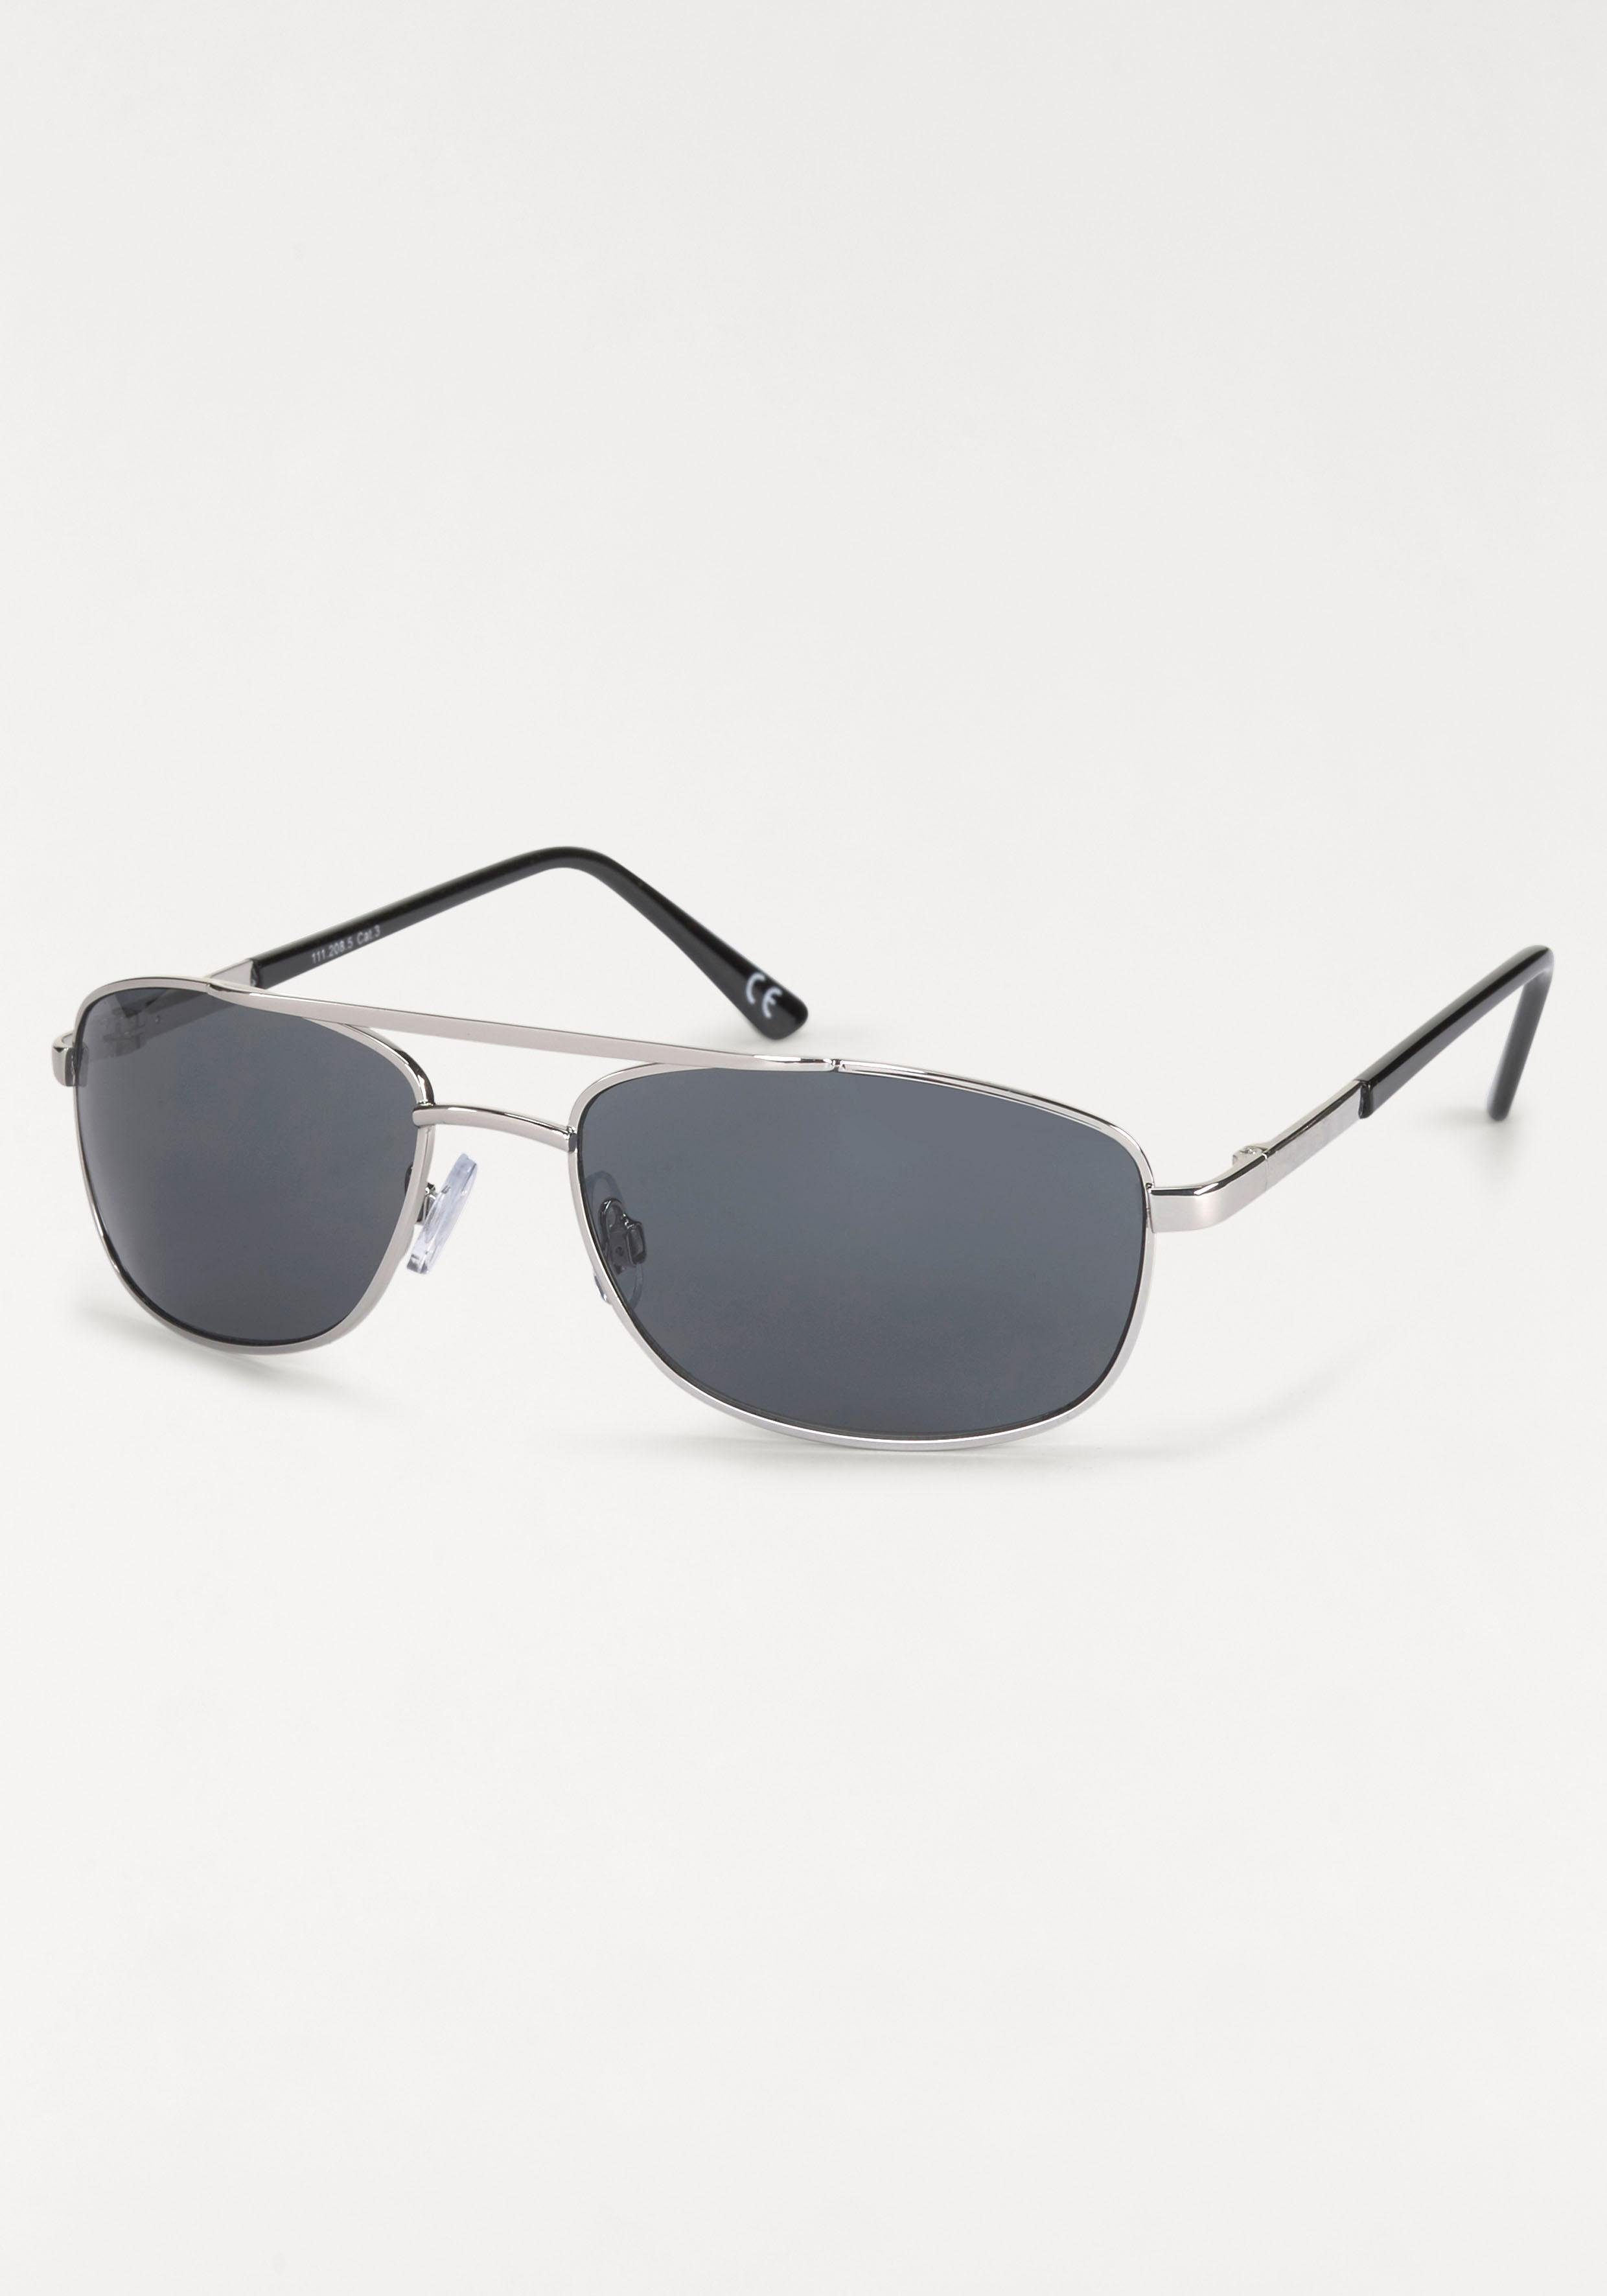 ROUTE 66 Feel the Freedom Eyewear Sonnenbrille, im modischen Design, grau, grau